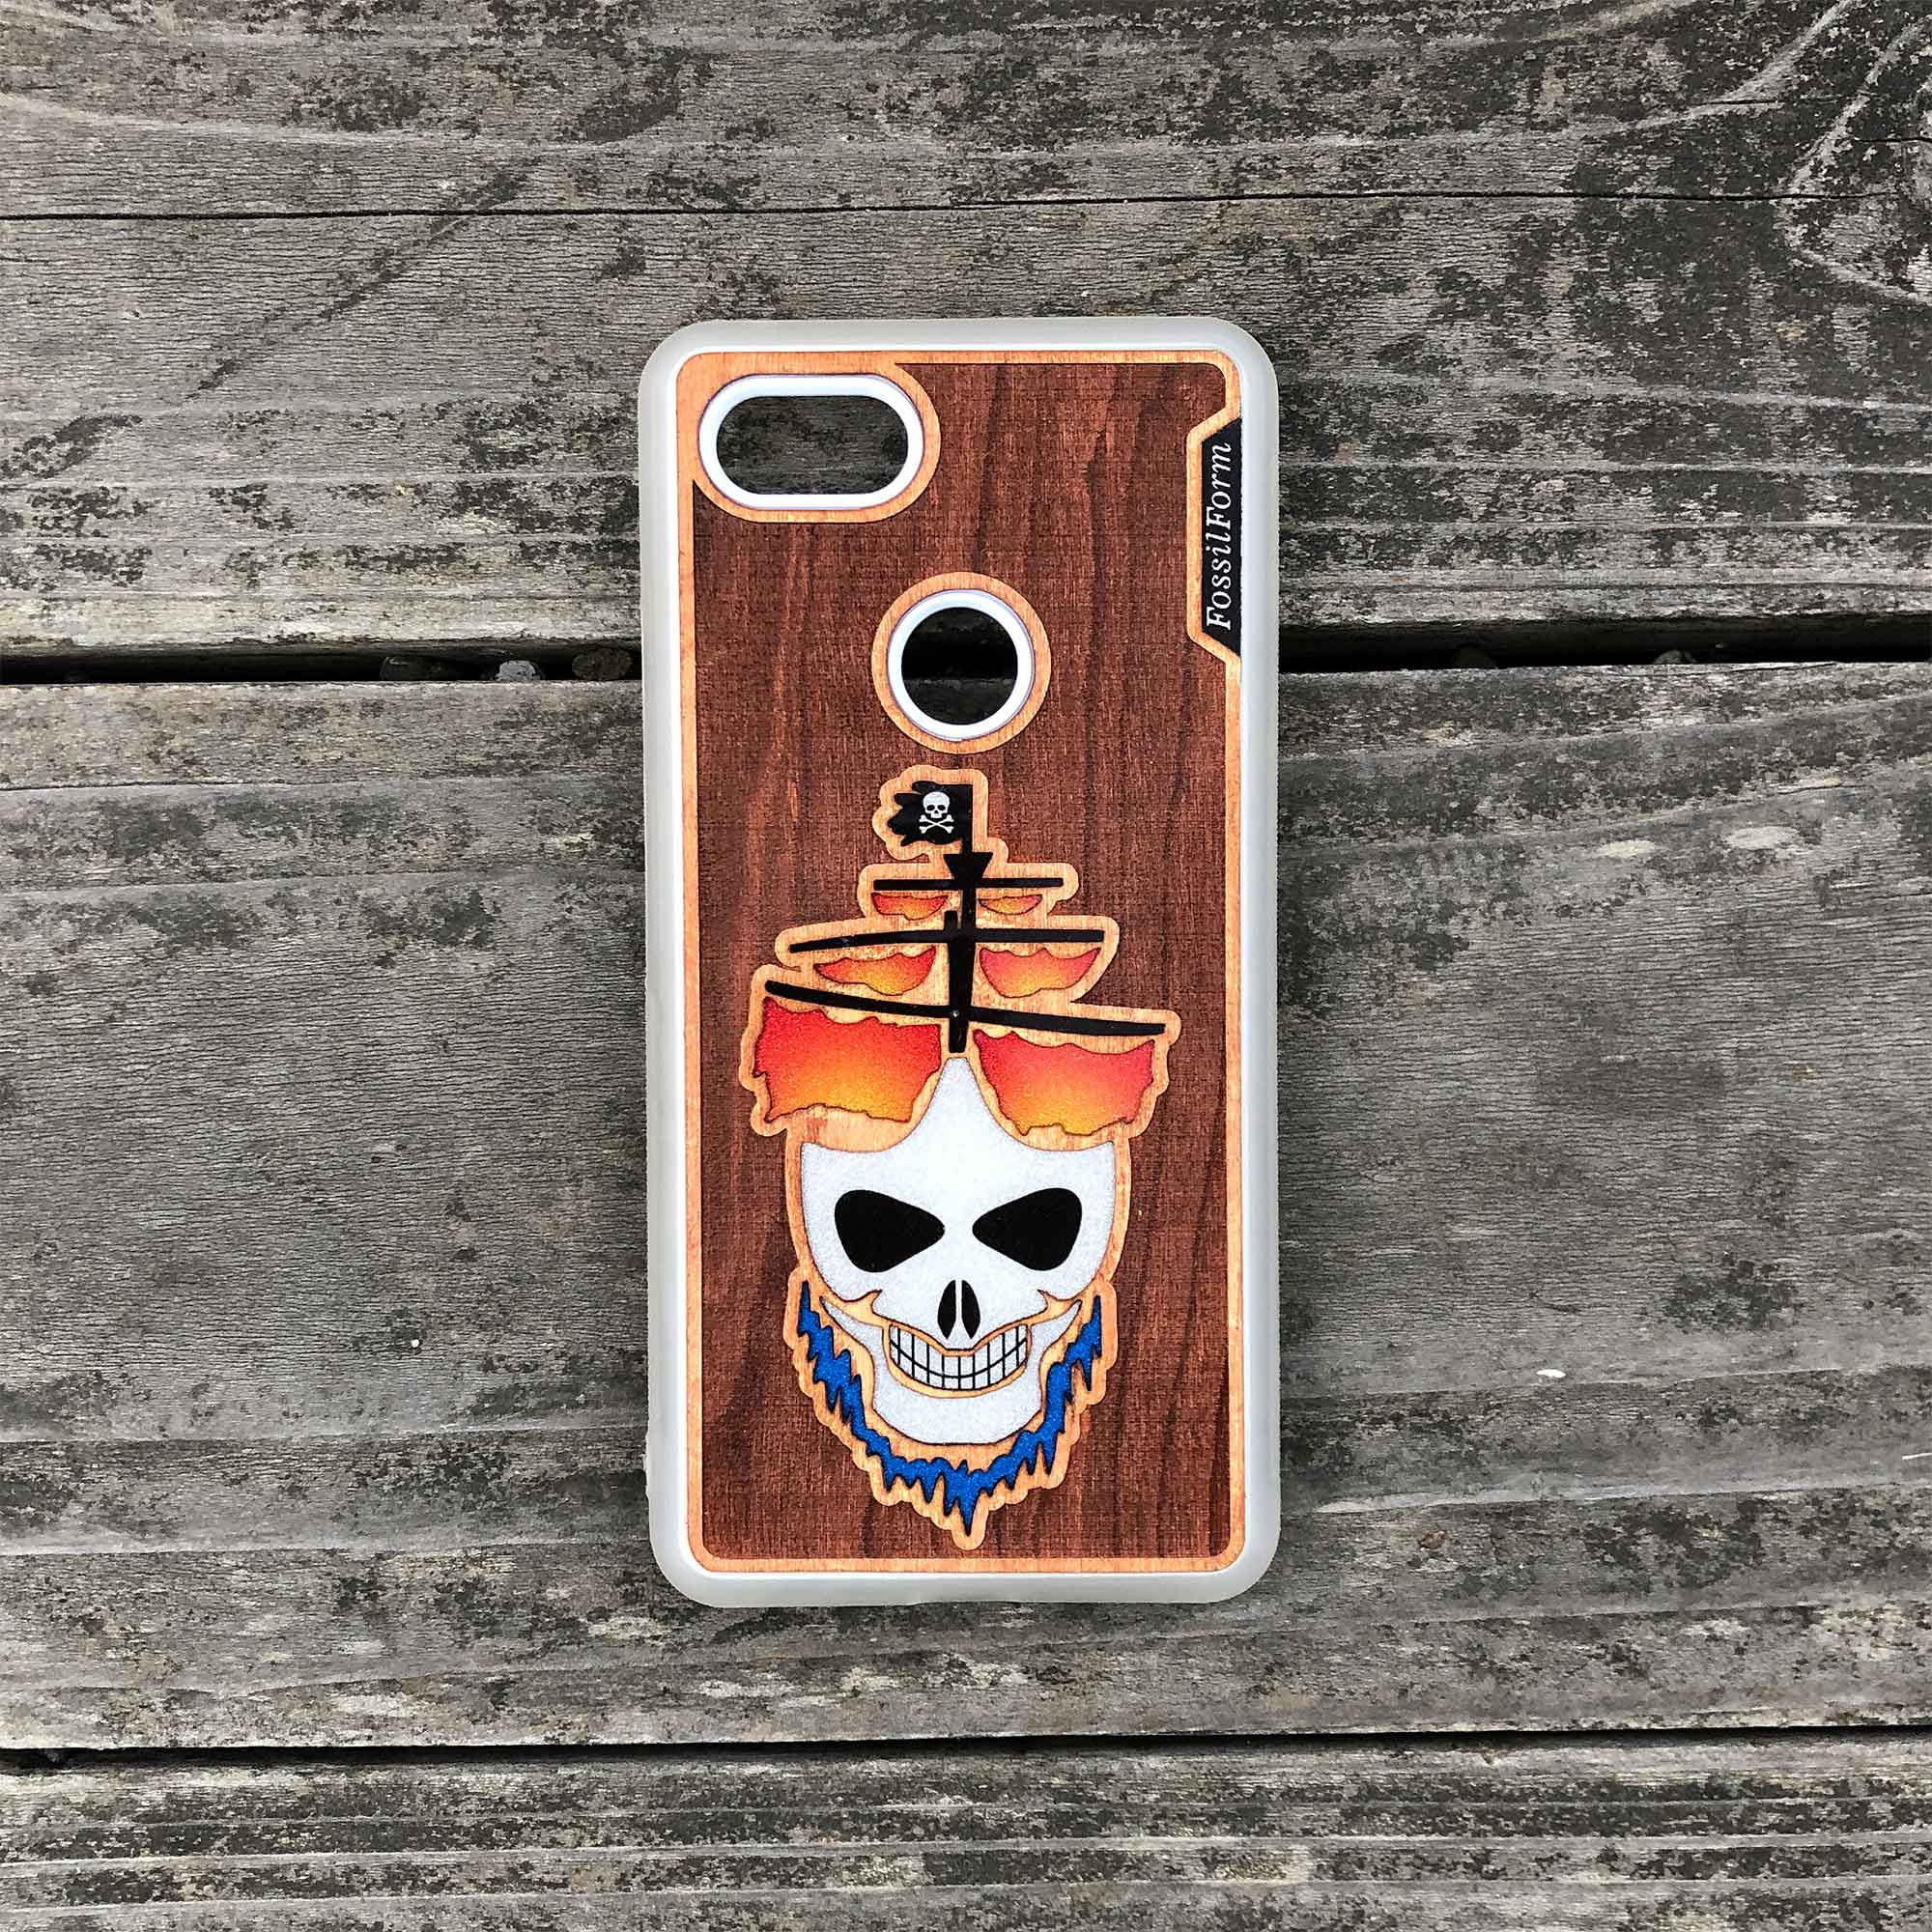 Ghost Pirate Ship - Engraved Wood & Resin Case - White